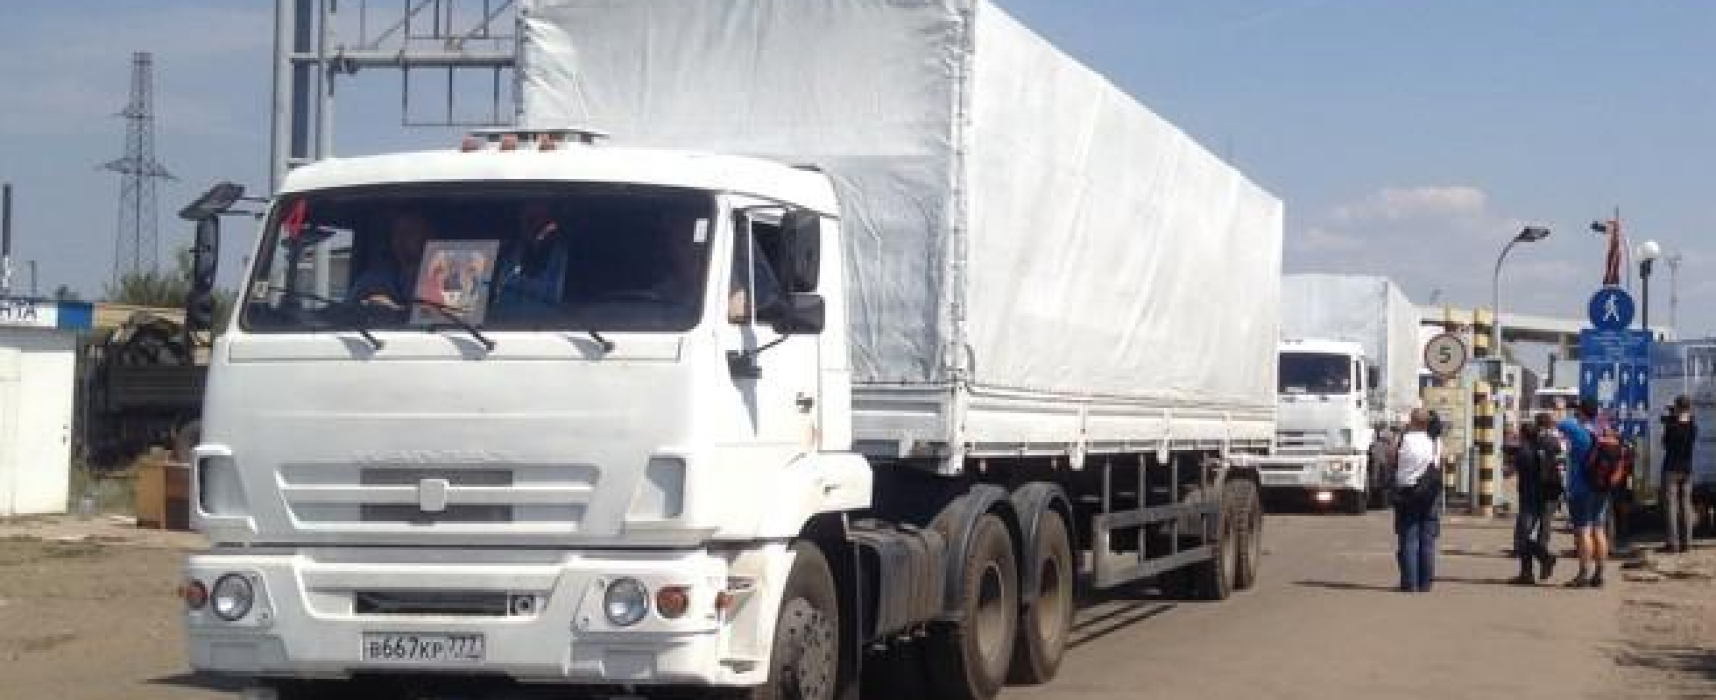 Lies of Russian Authorities: Ukraine has Permitted the Aid Convoy Entry